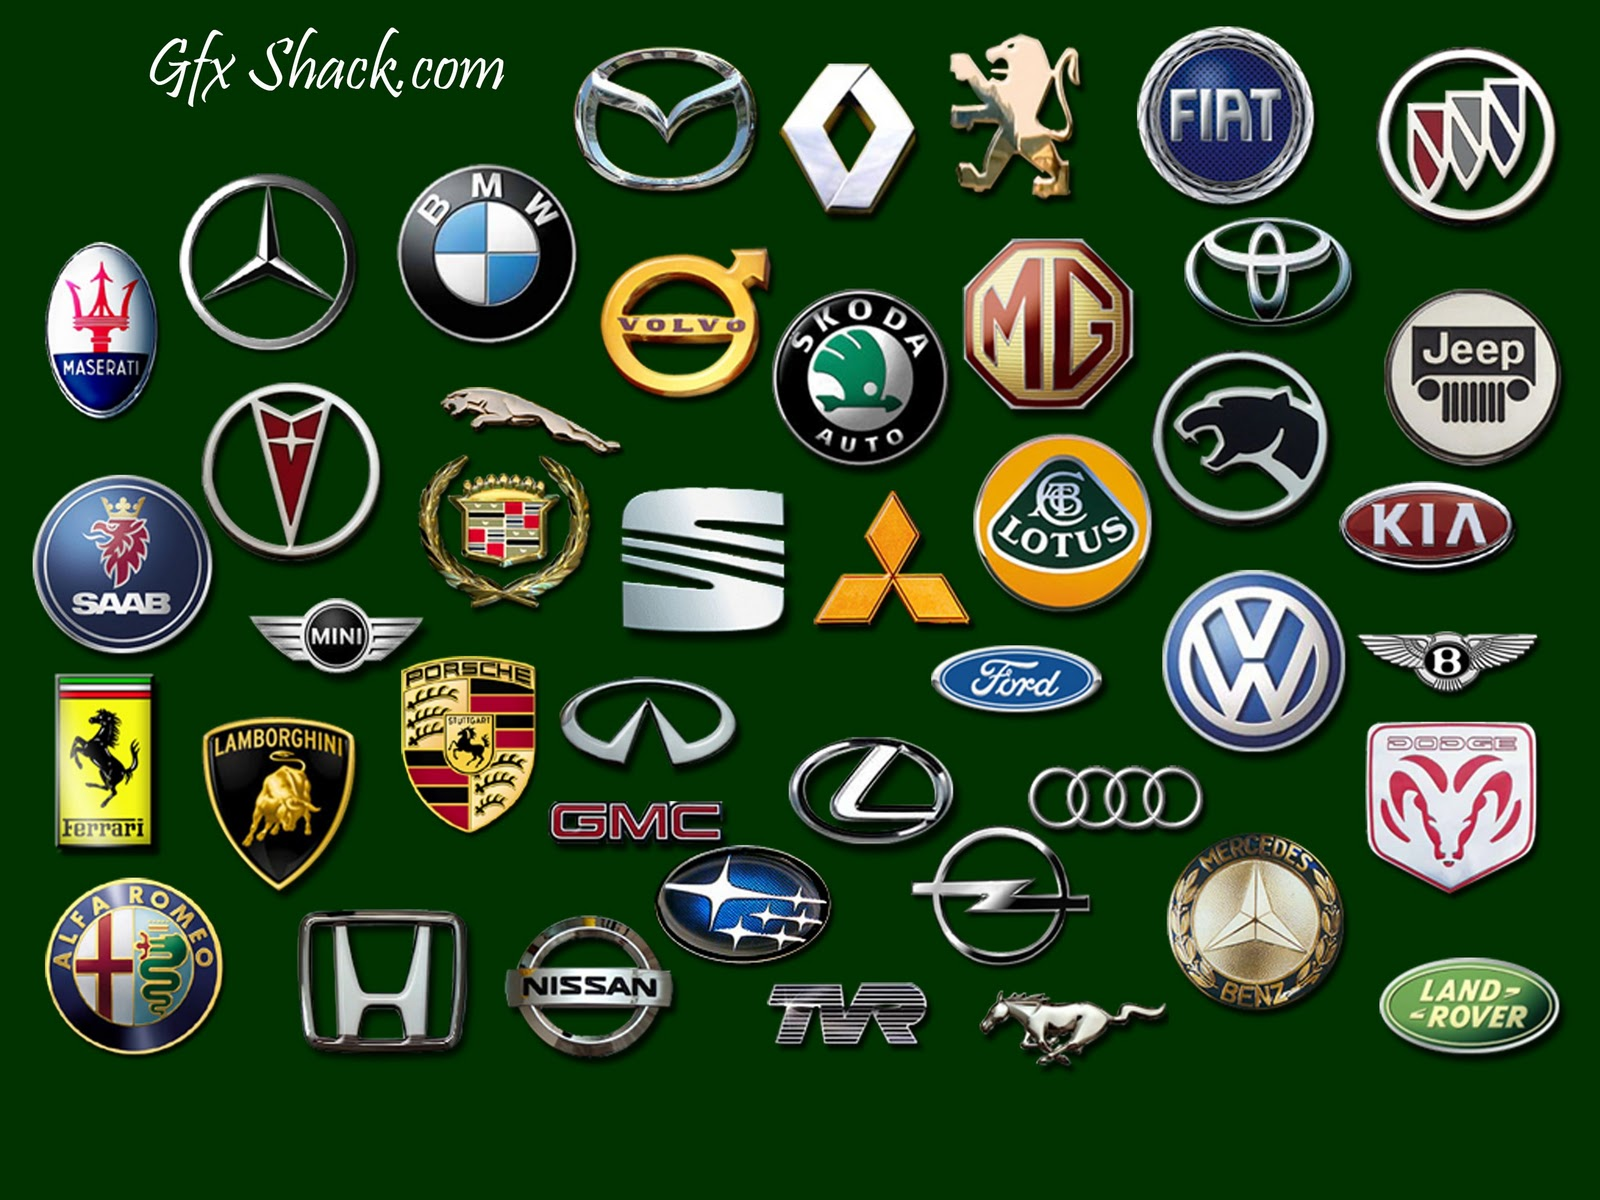 Foreign Car Logos And Names List | Wallpapers Gallery |Foreign Cars Logos